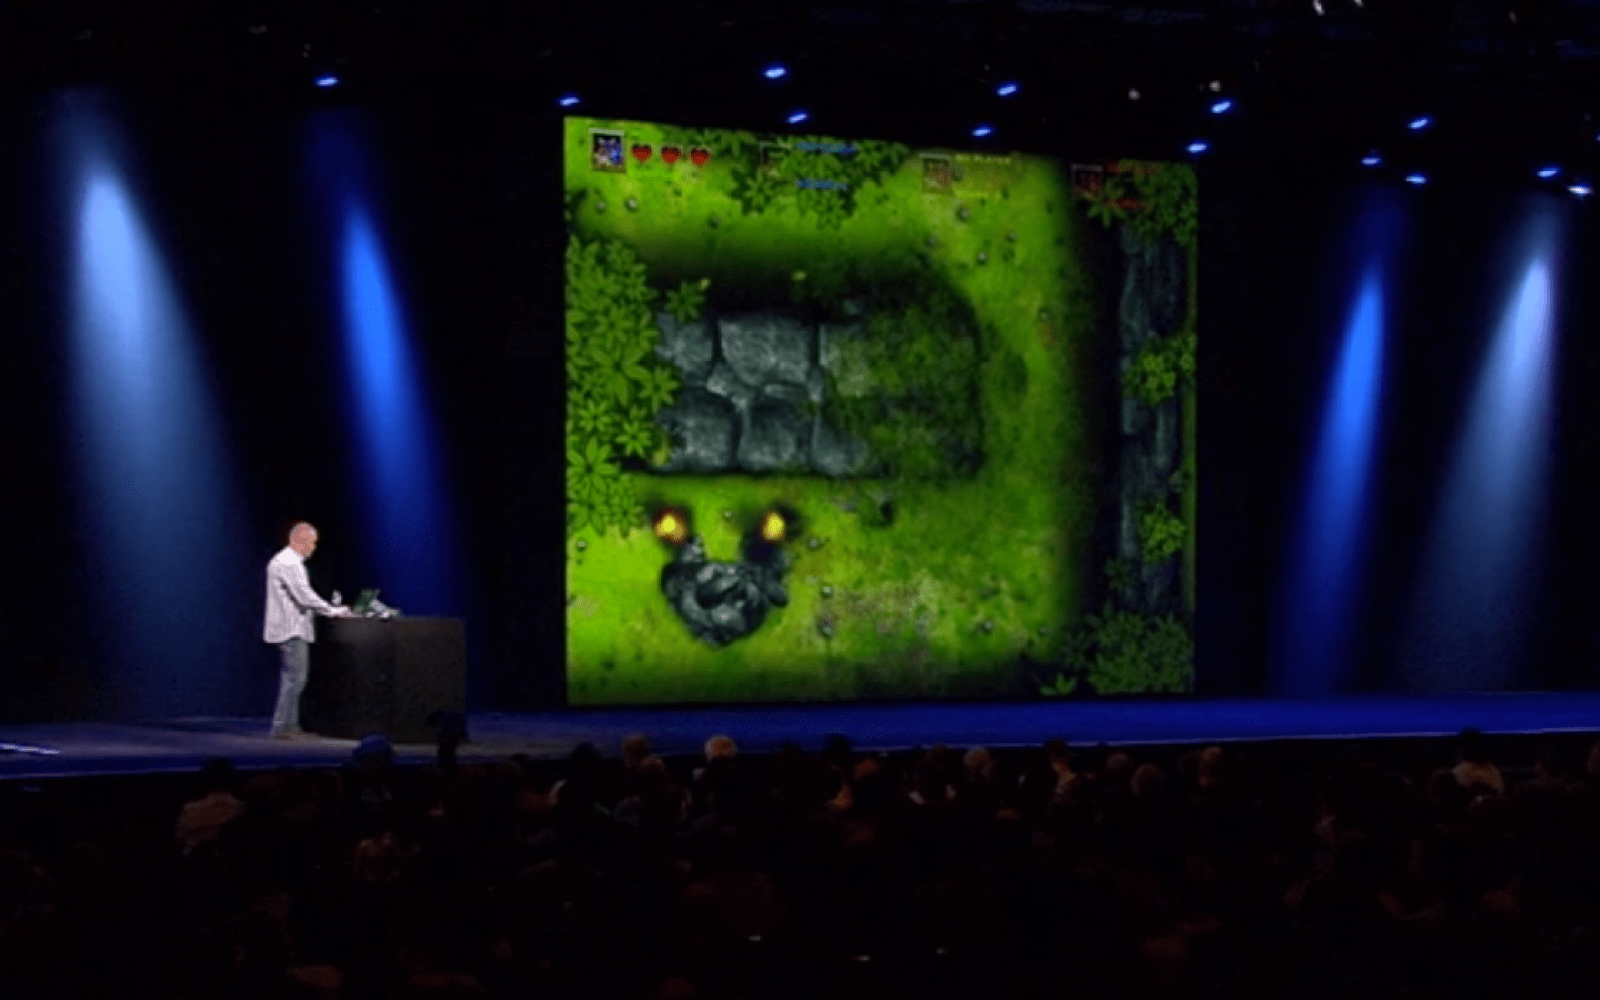 Apple clamping down on cheaters & adding new features for gamers in iOS 7